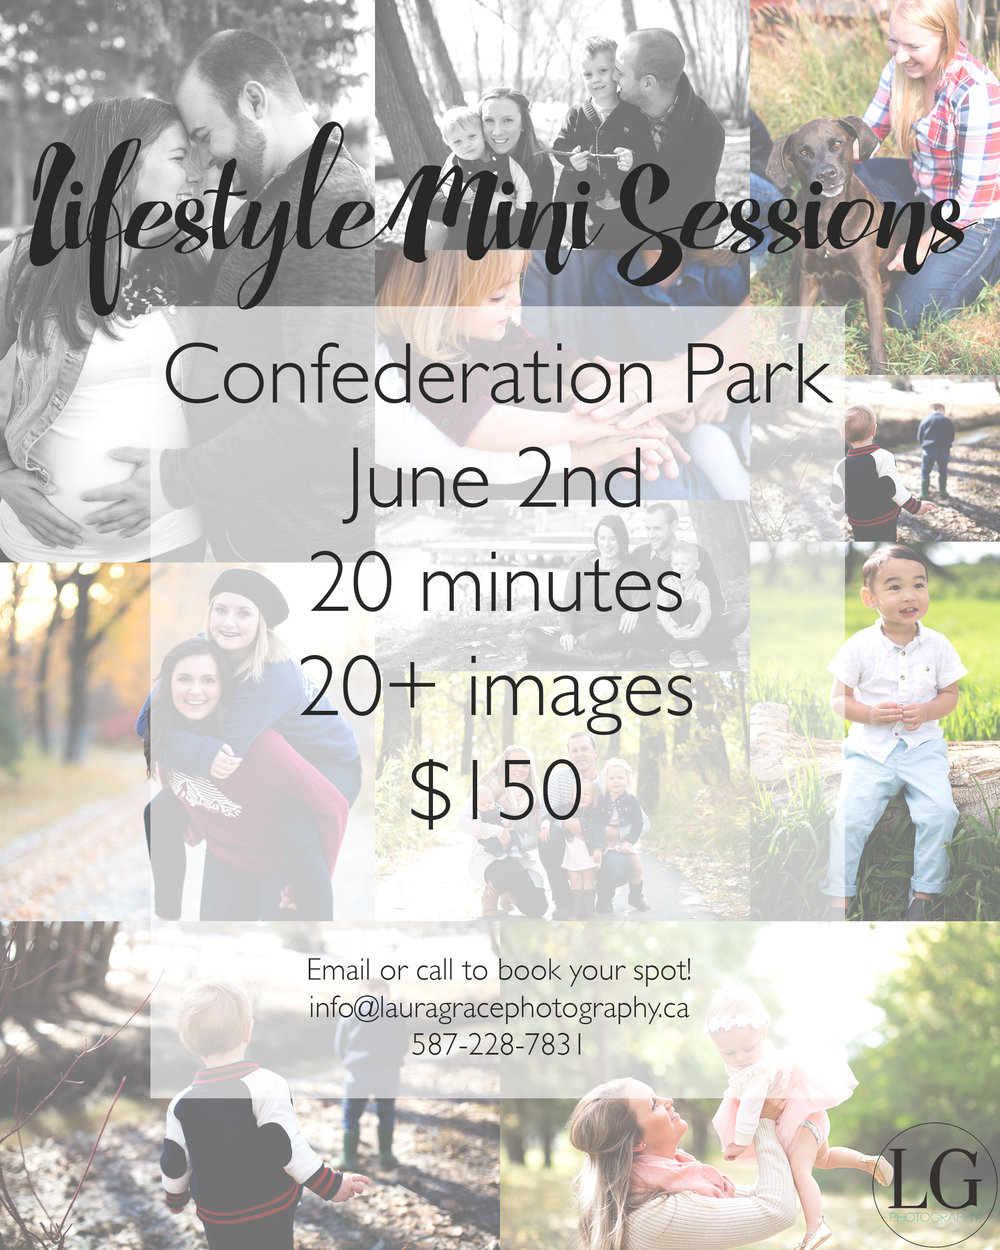 Laura Grace Photography Spring Lifestyle Mini Sessions